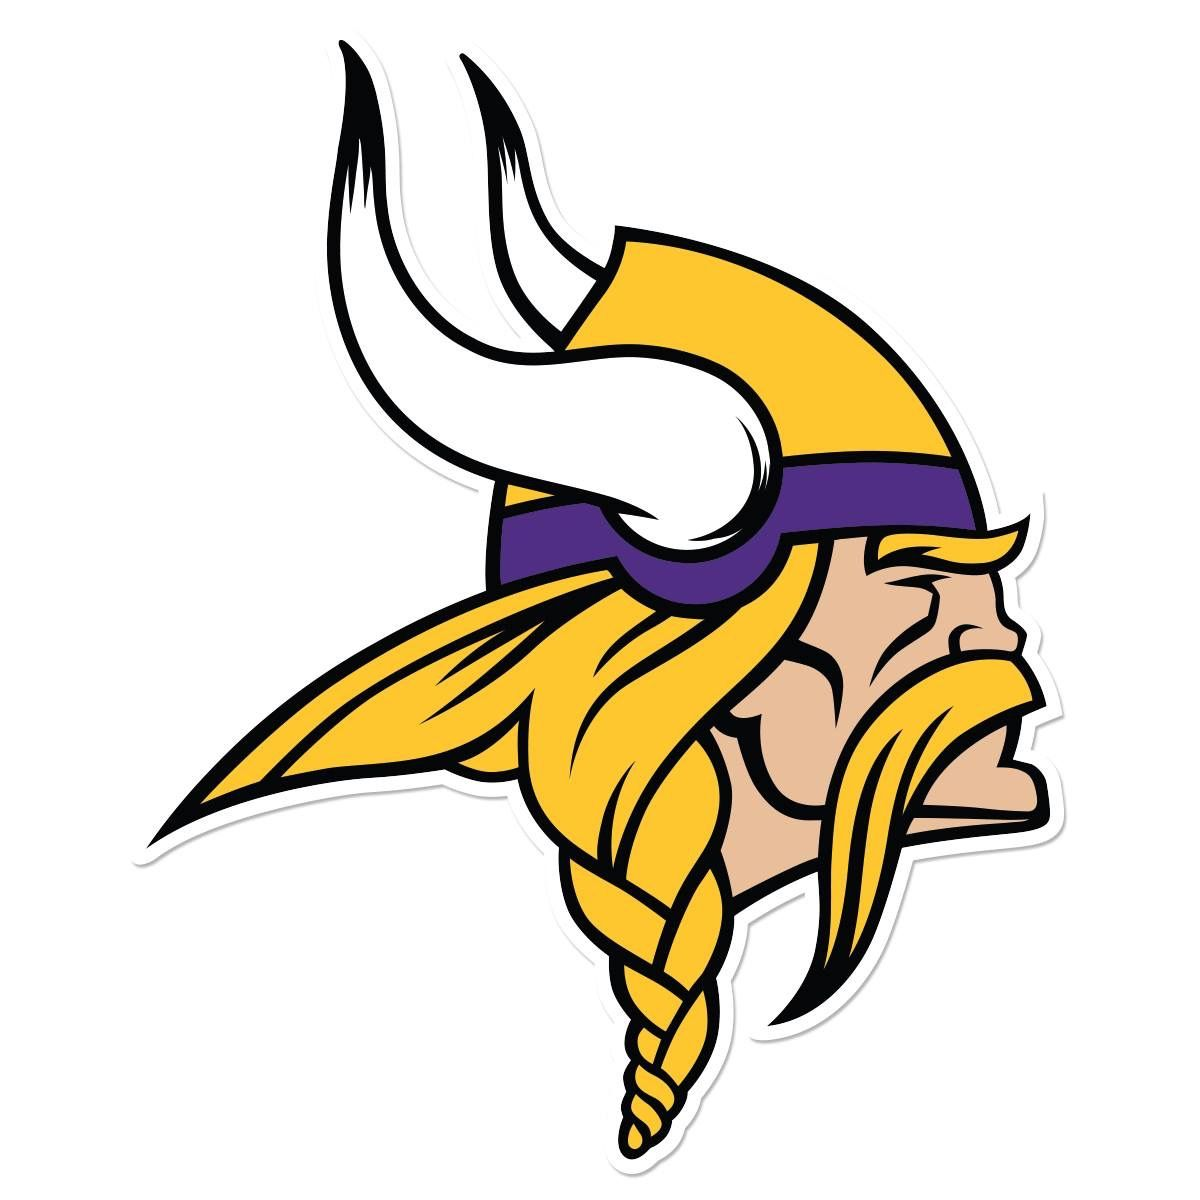 The Vikings.